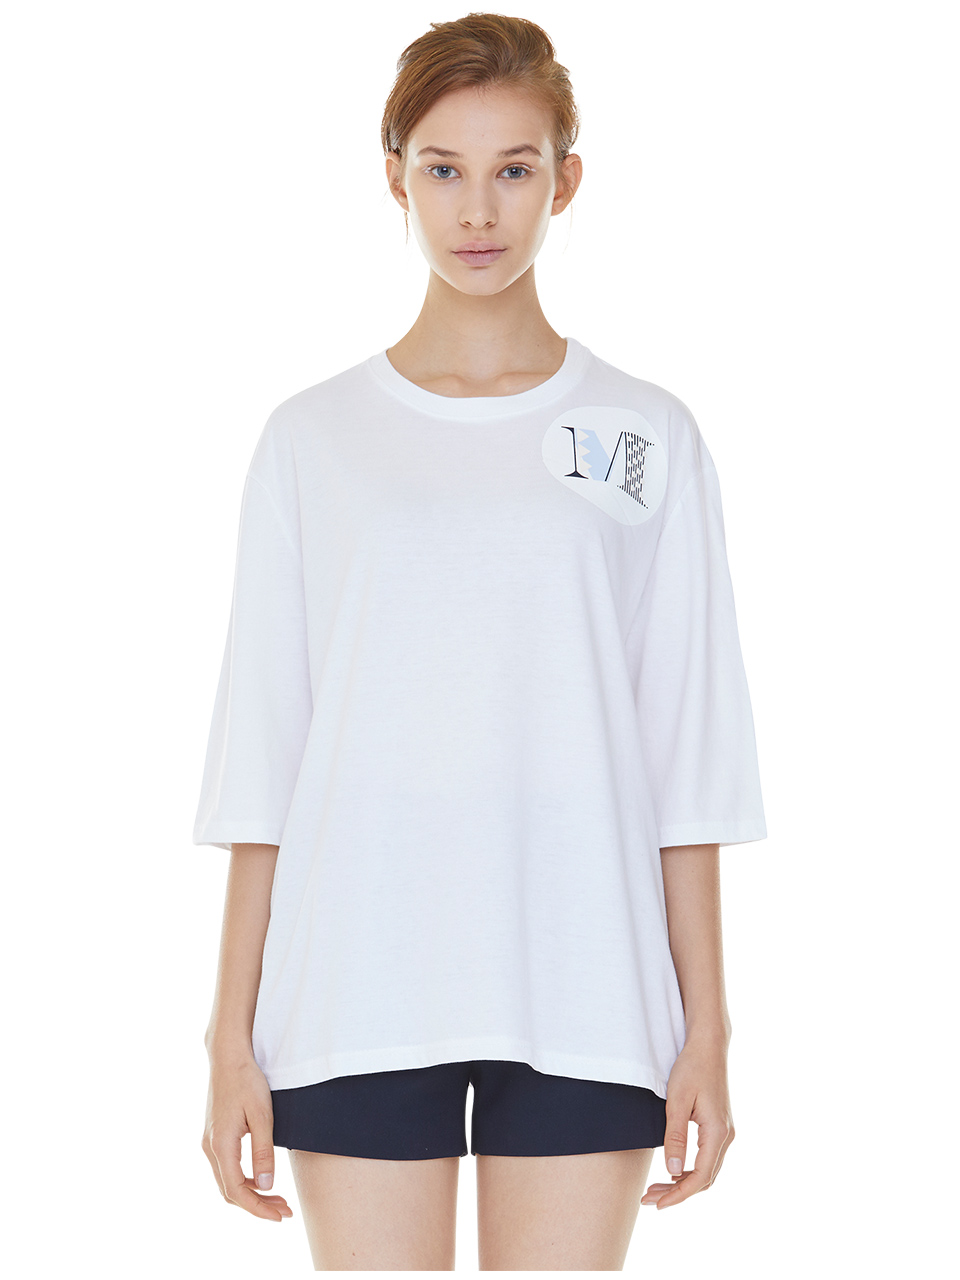 oversized shield m t-shirts - white